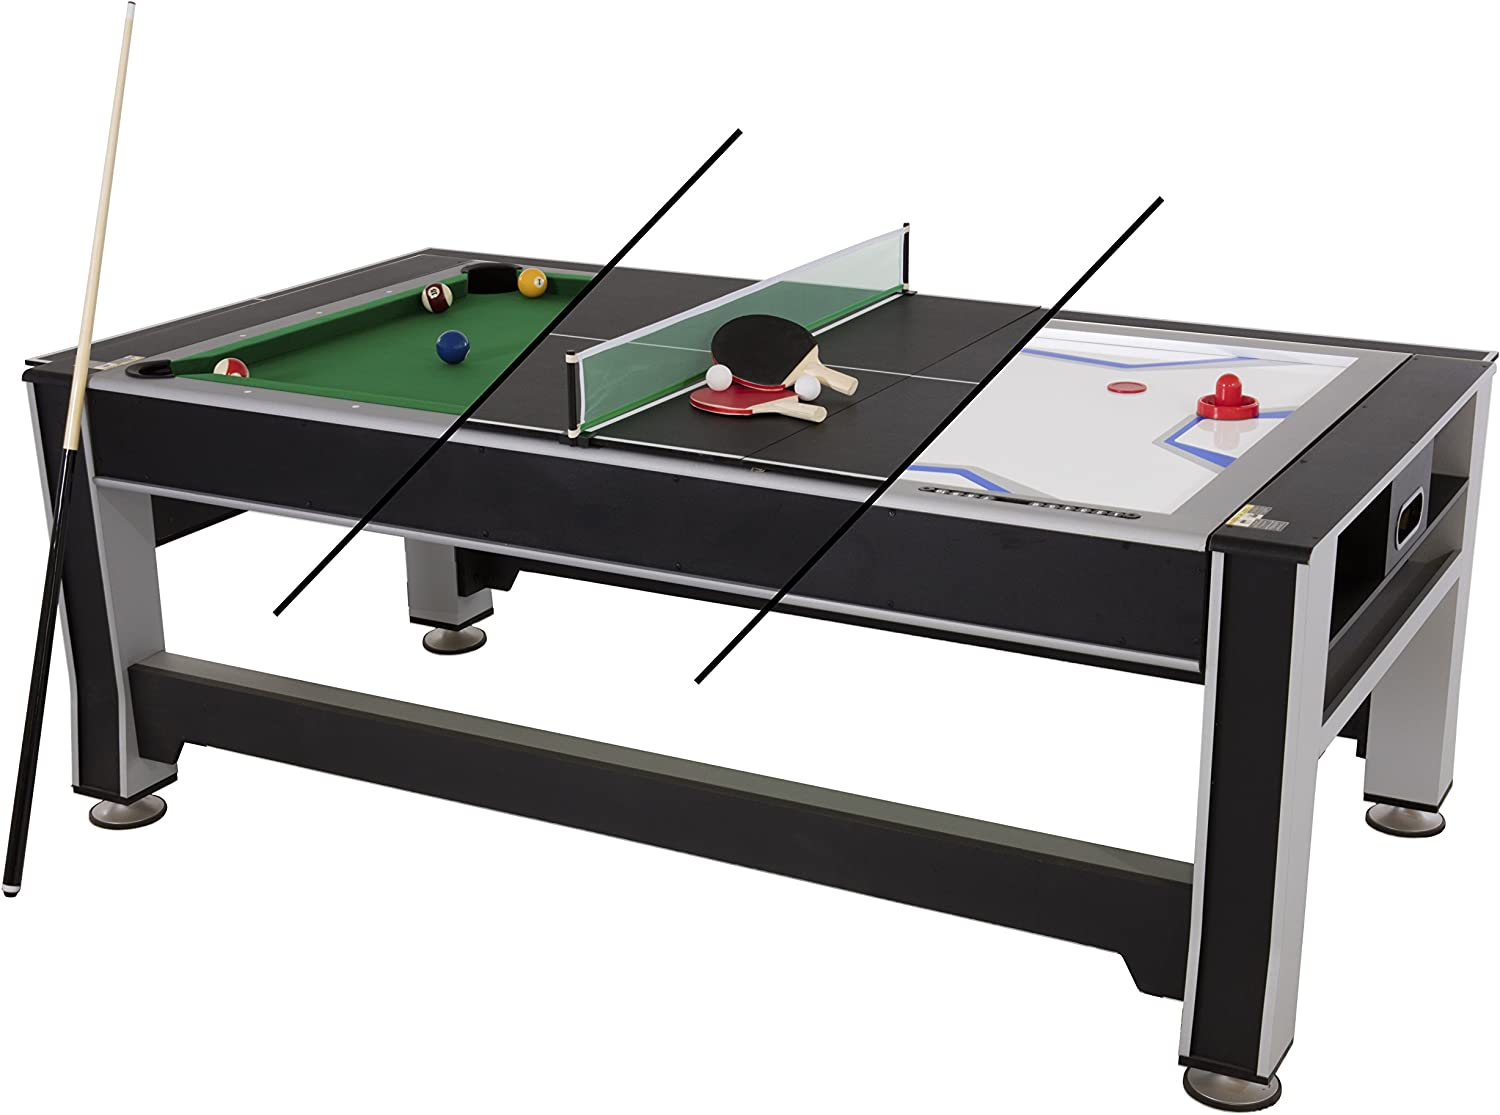 Amazon.com: Triumph 3-in-1 Swivel Multigame Table: Sports & Outdoors